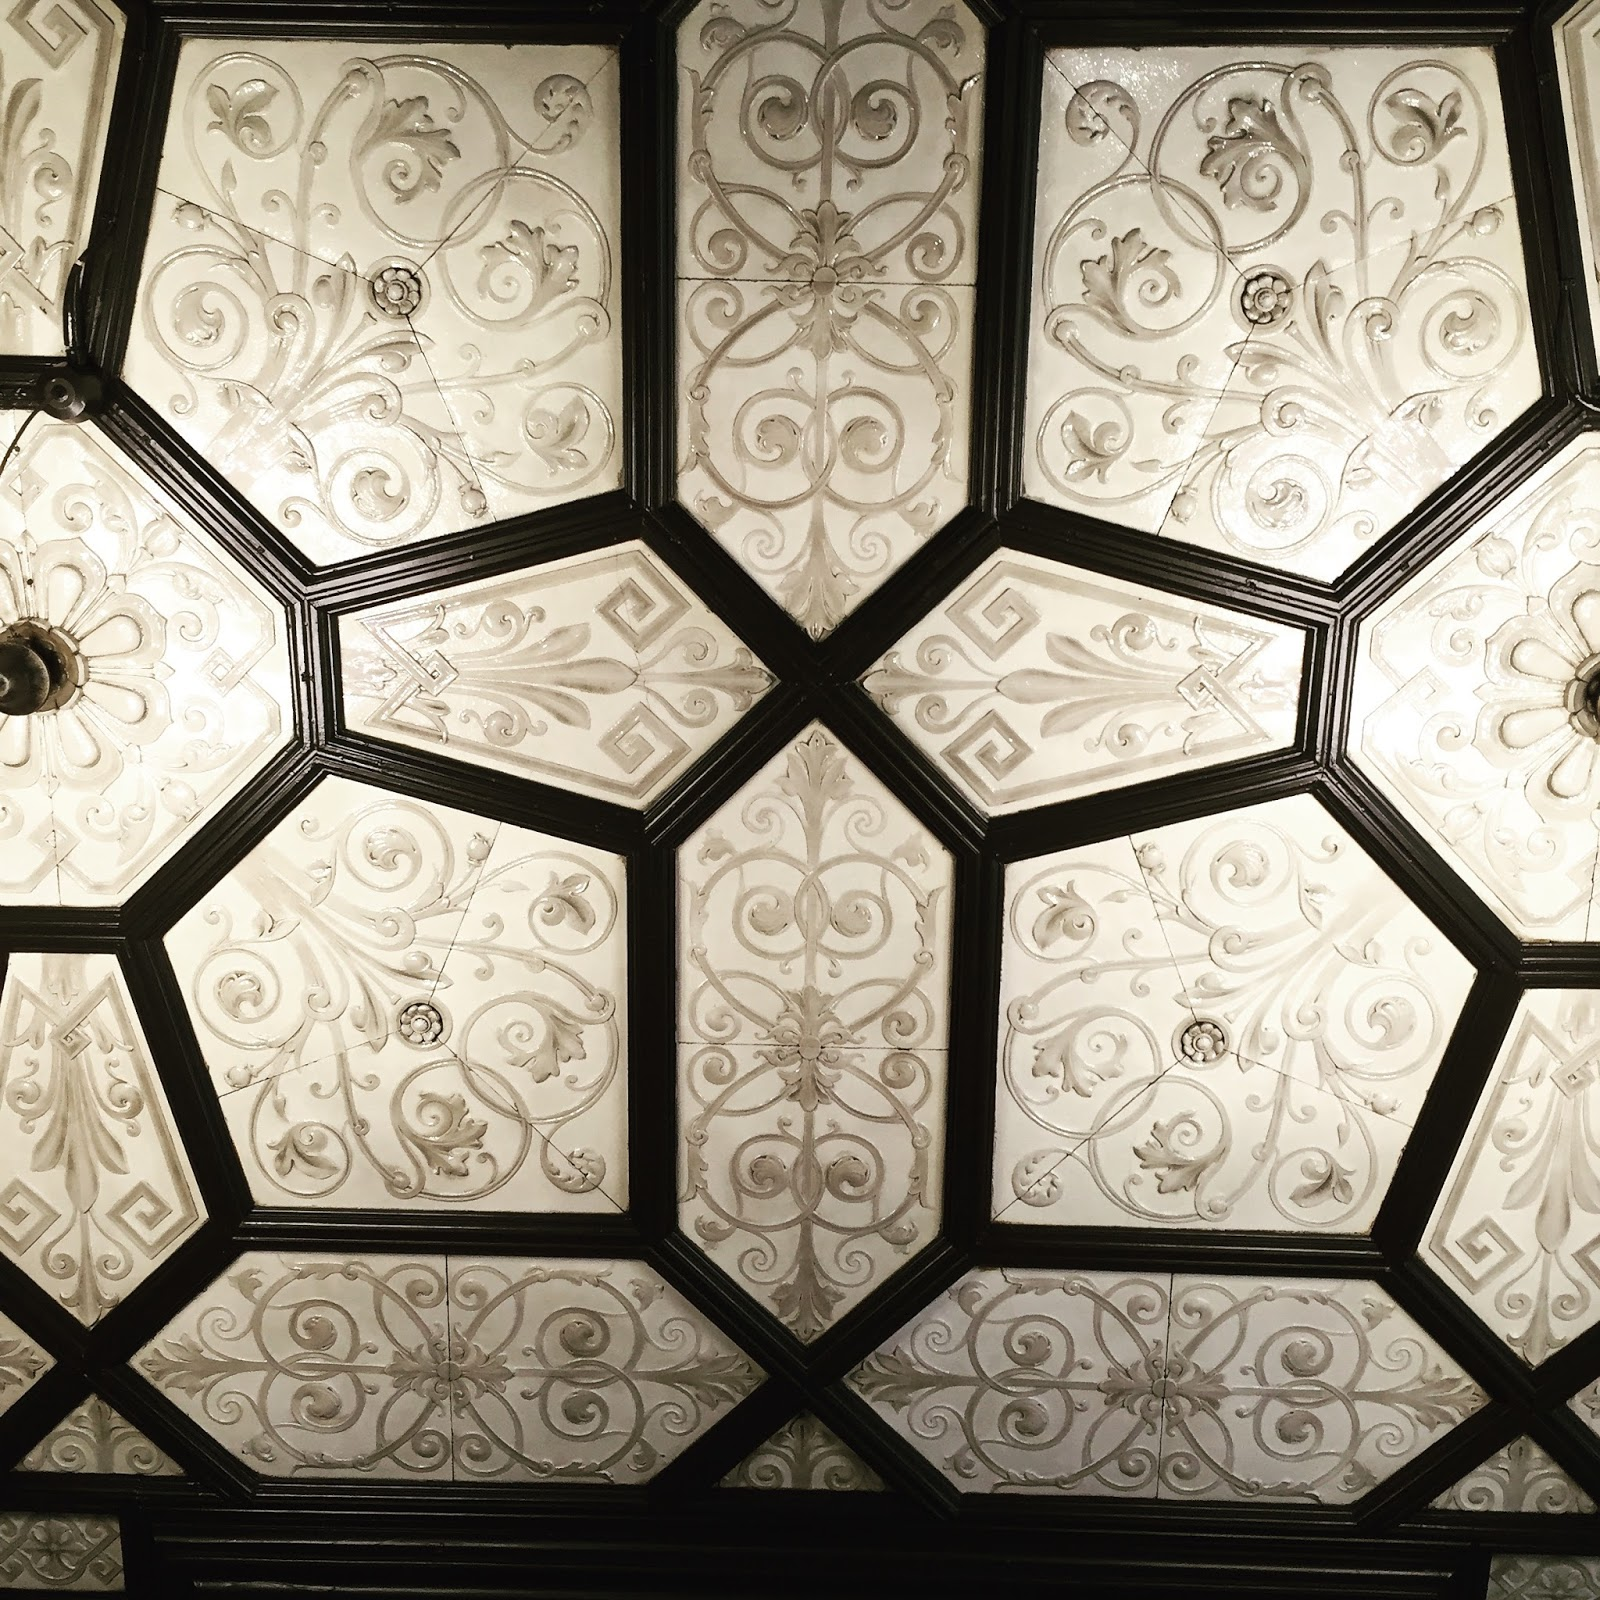 Emma vining hand knitting march 2016 ceiling tiles in 71 renfield street glasgow dailygadgetfo Image collections